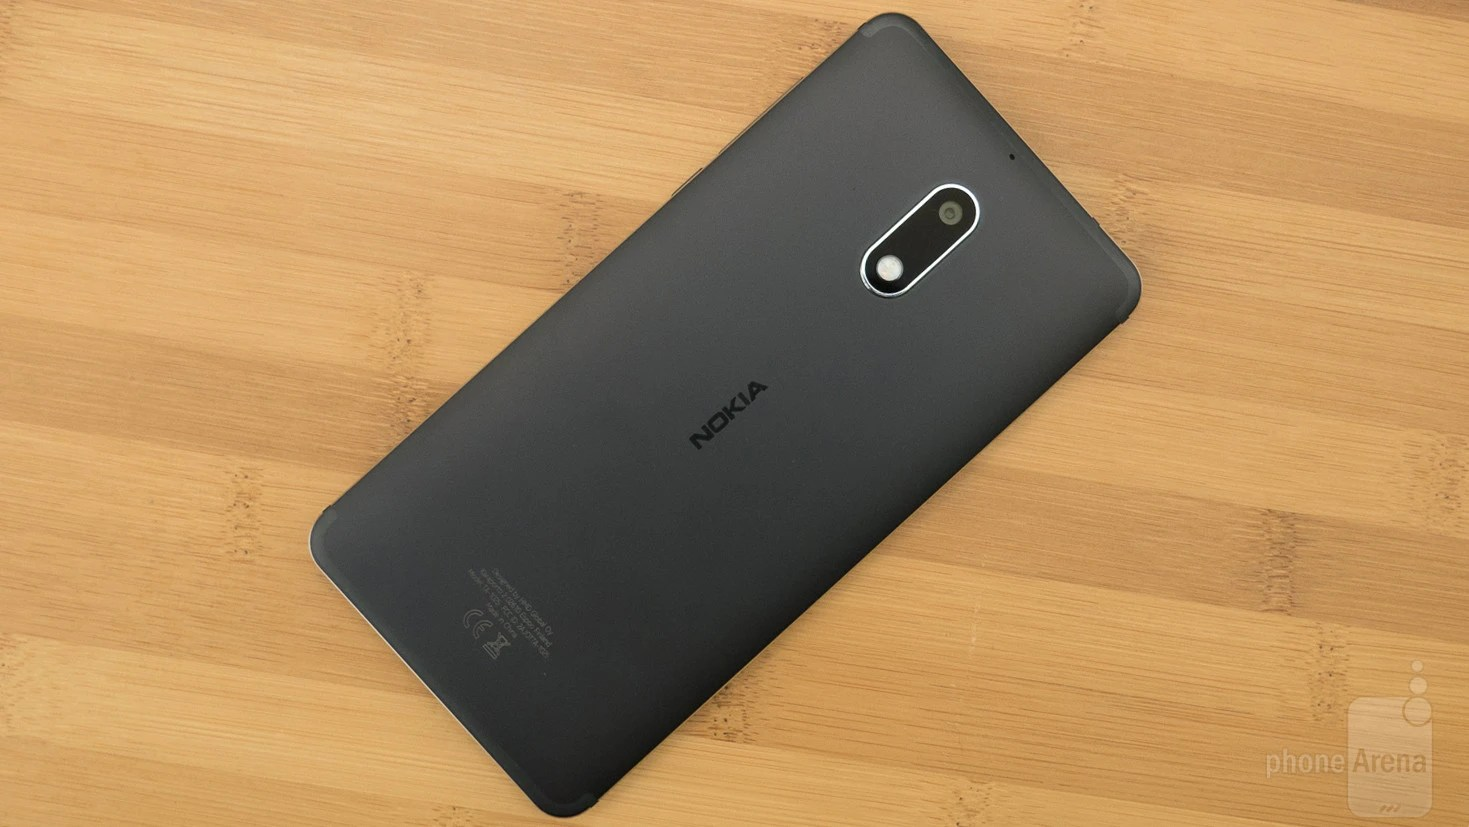 Nokia 6 Arte Black Video Nokia 6 Review Phonearena